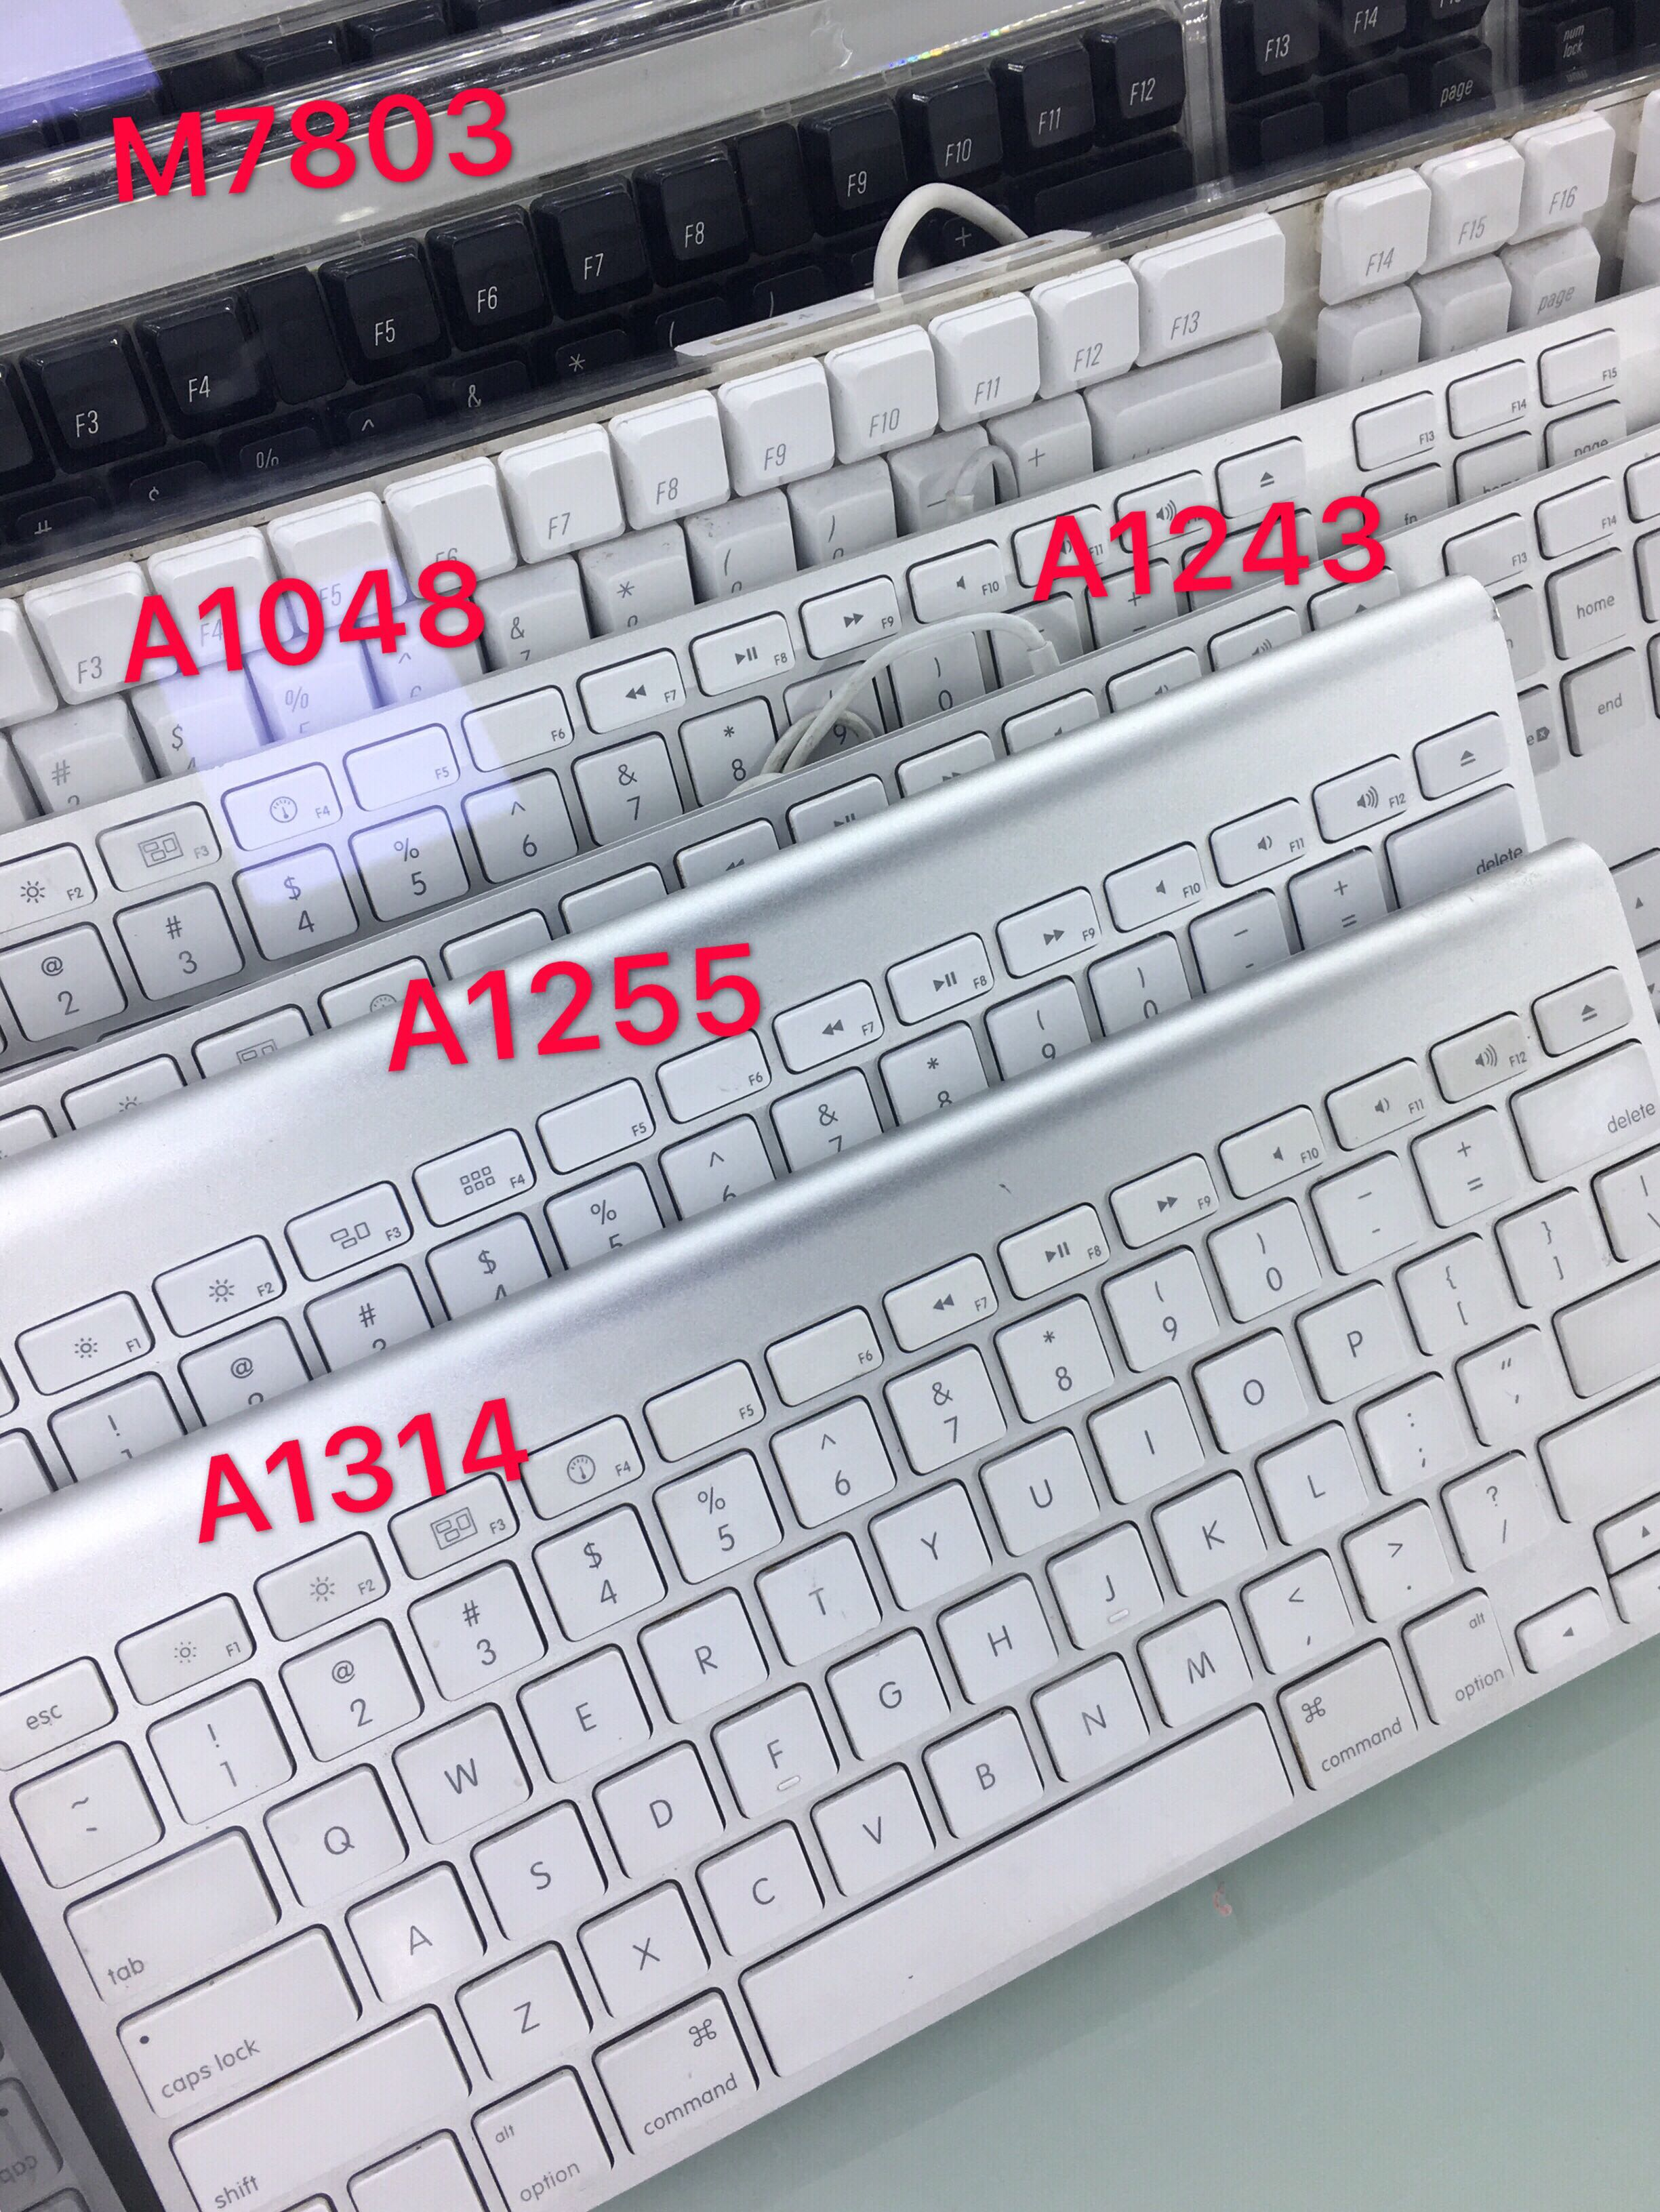 Apple Wired/Wireless Keyboard A1314 A1255 A1243 A1048, Electronics ...